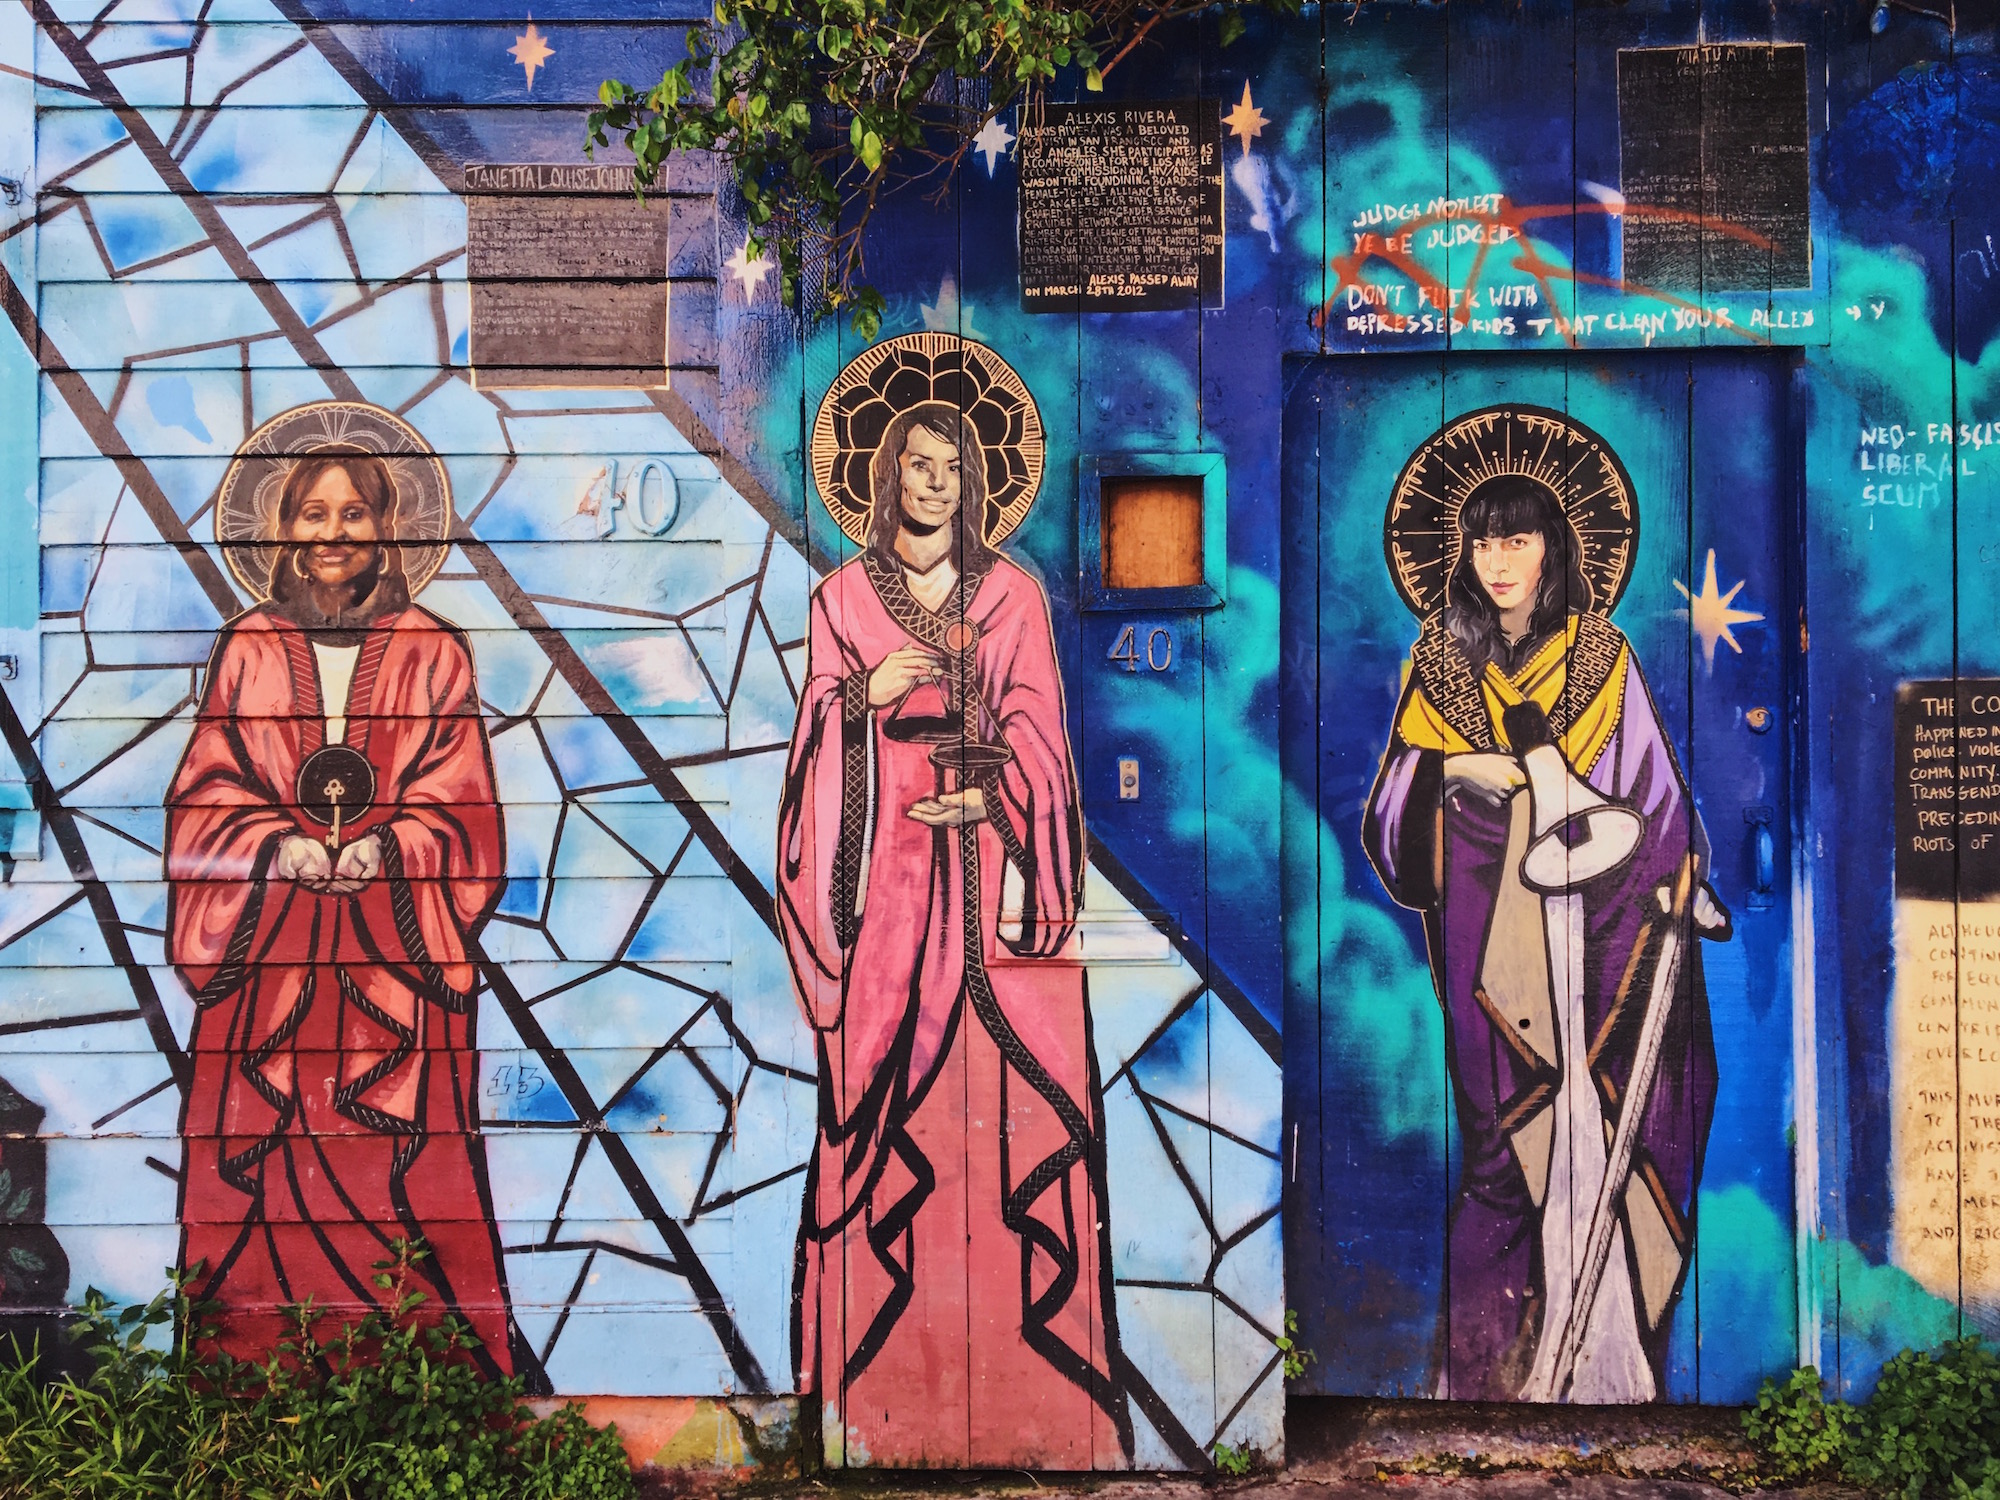 Clarion Alley - Murales nel quartiere Mission di San Francisco - Honoring Trans Activists (2012) - Tanya Wischerath